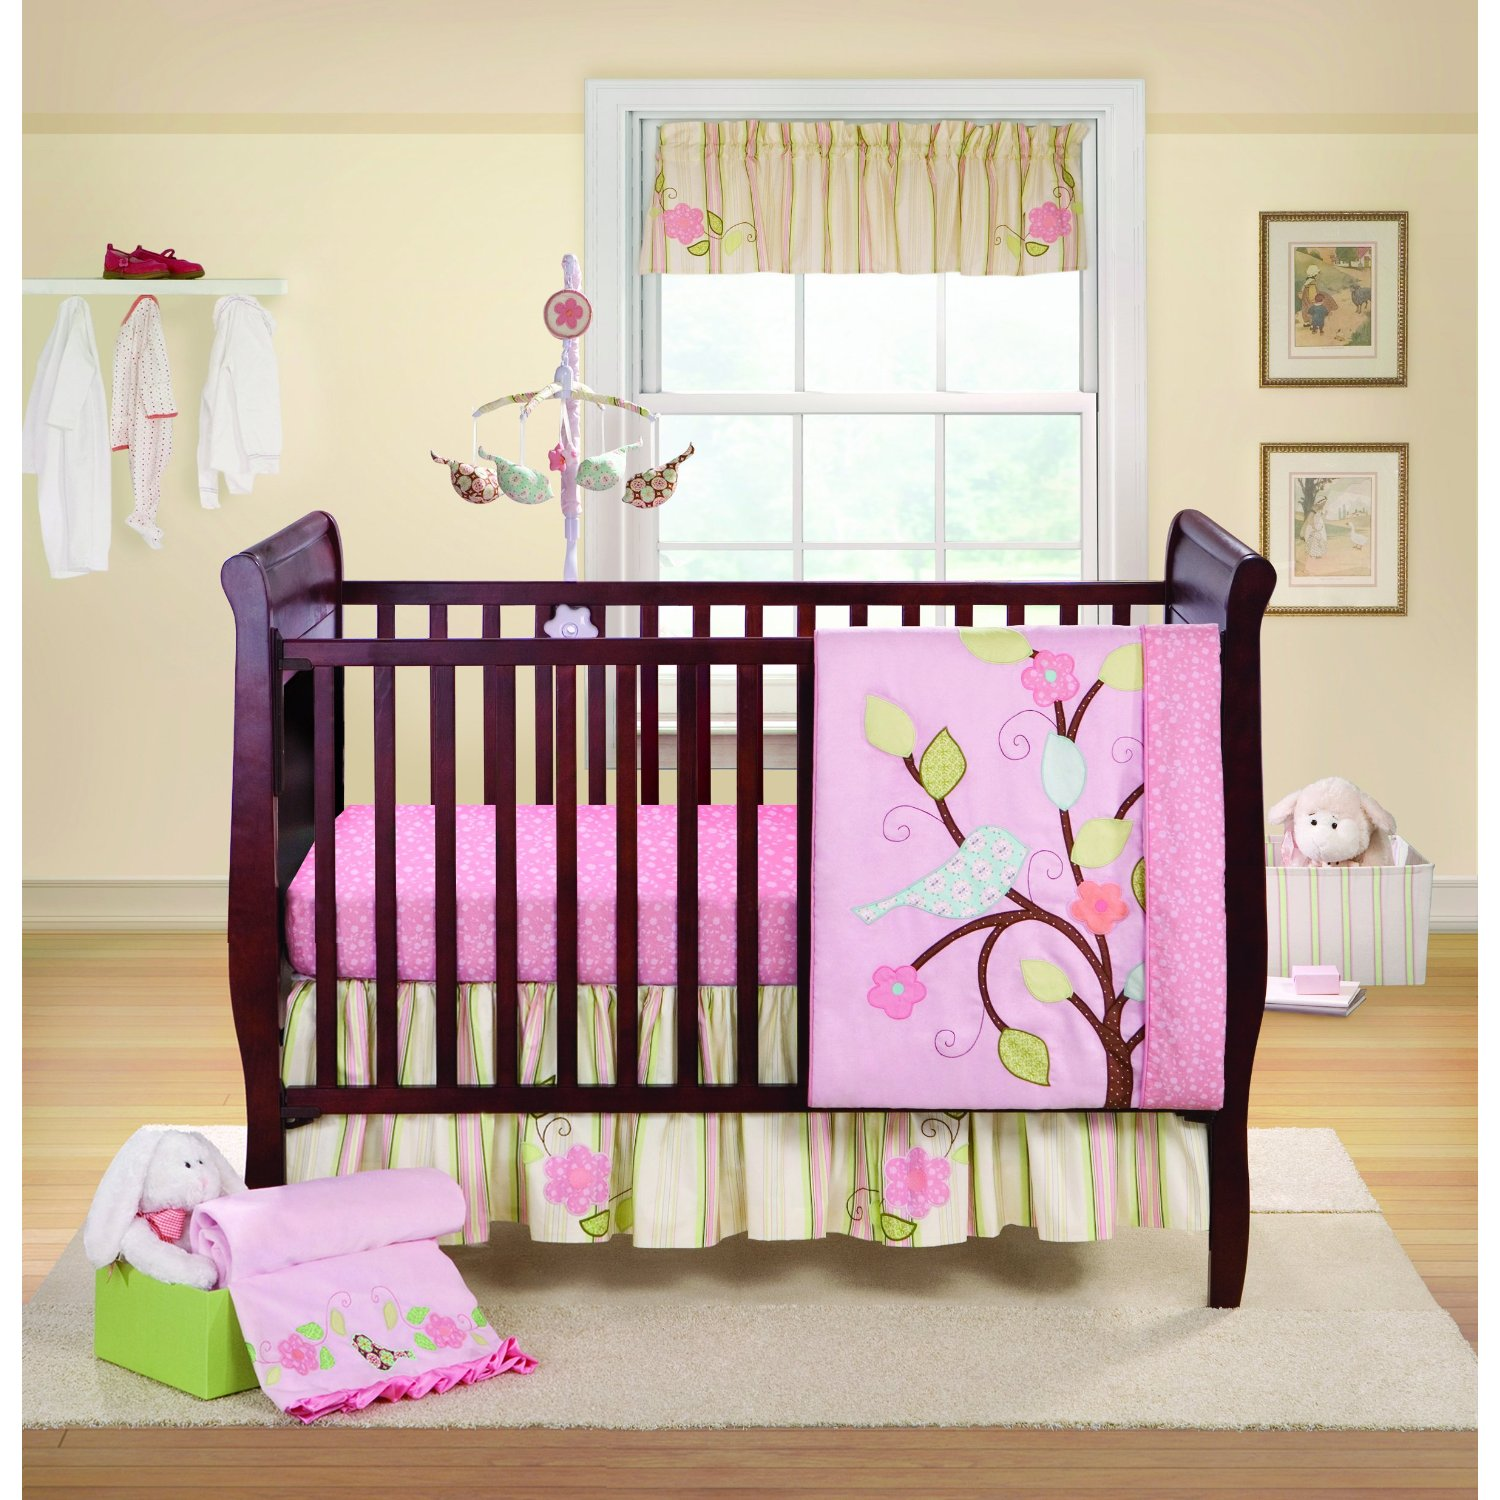 cheap guides abby delta convertible changer children deals find line n get quotations on shopping crib